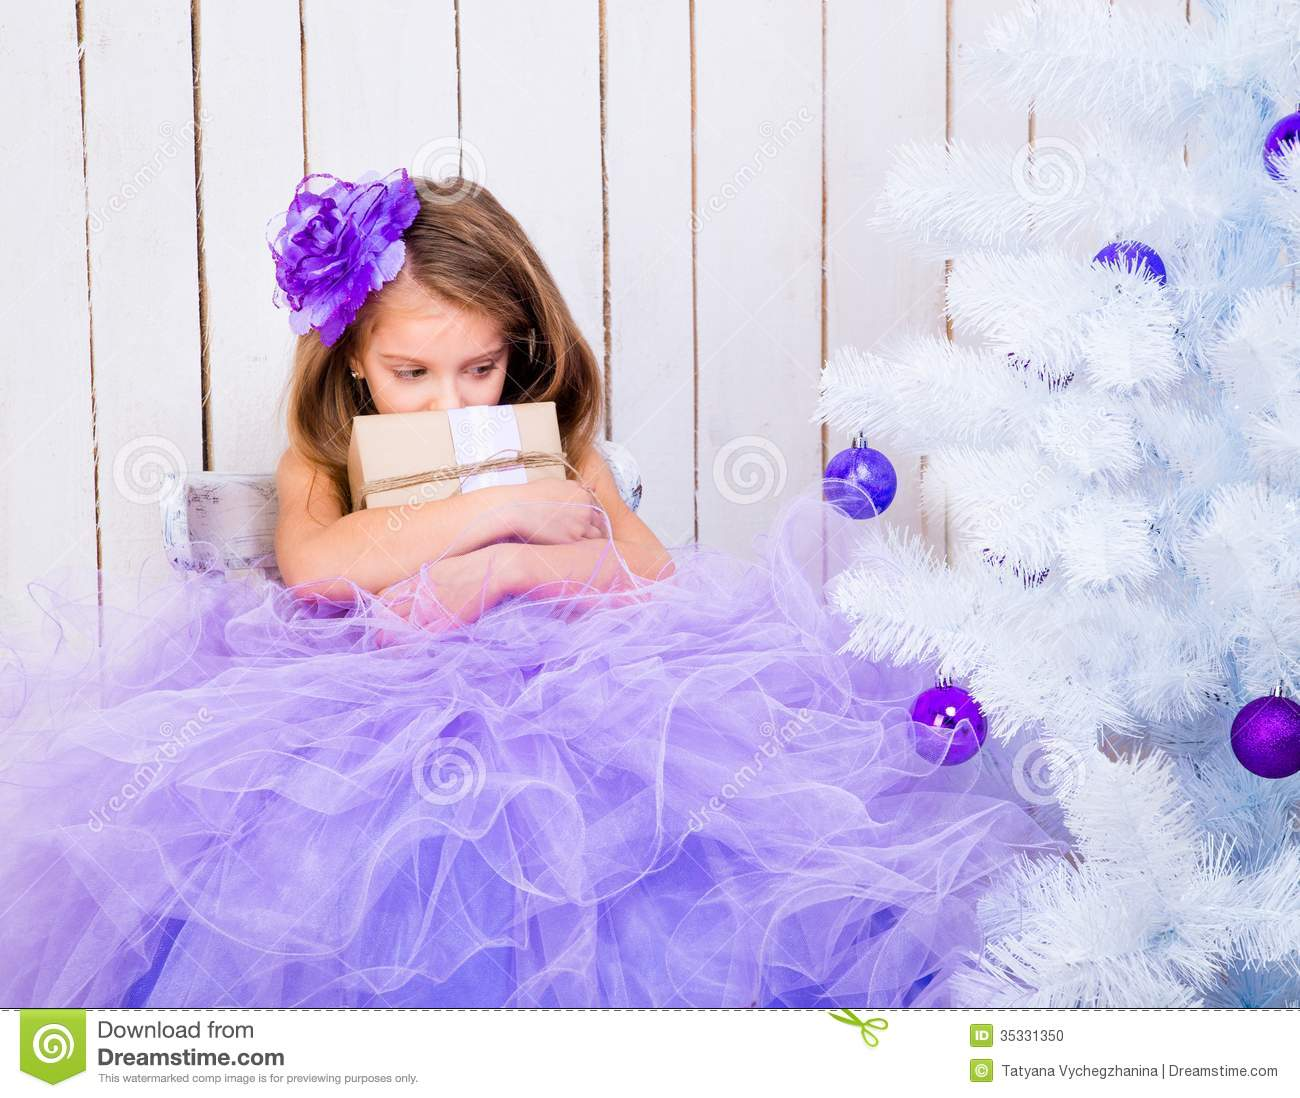 Sad Little Girl With A Gift Stock Photo - Image: 35331350